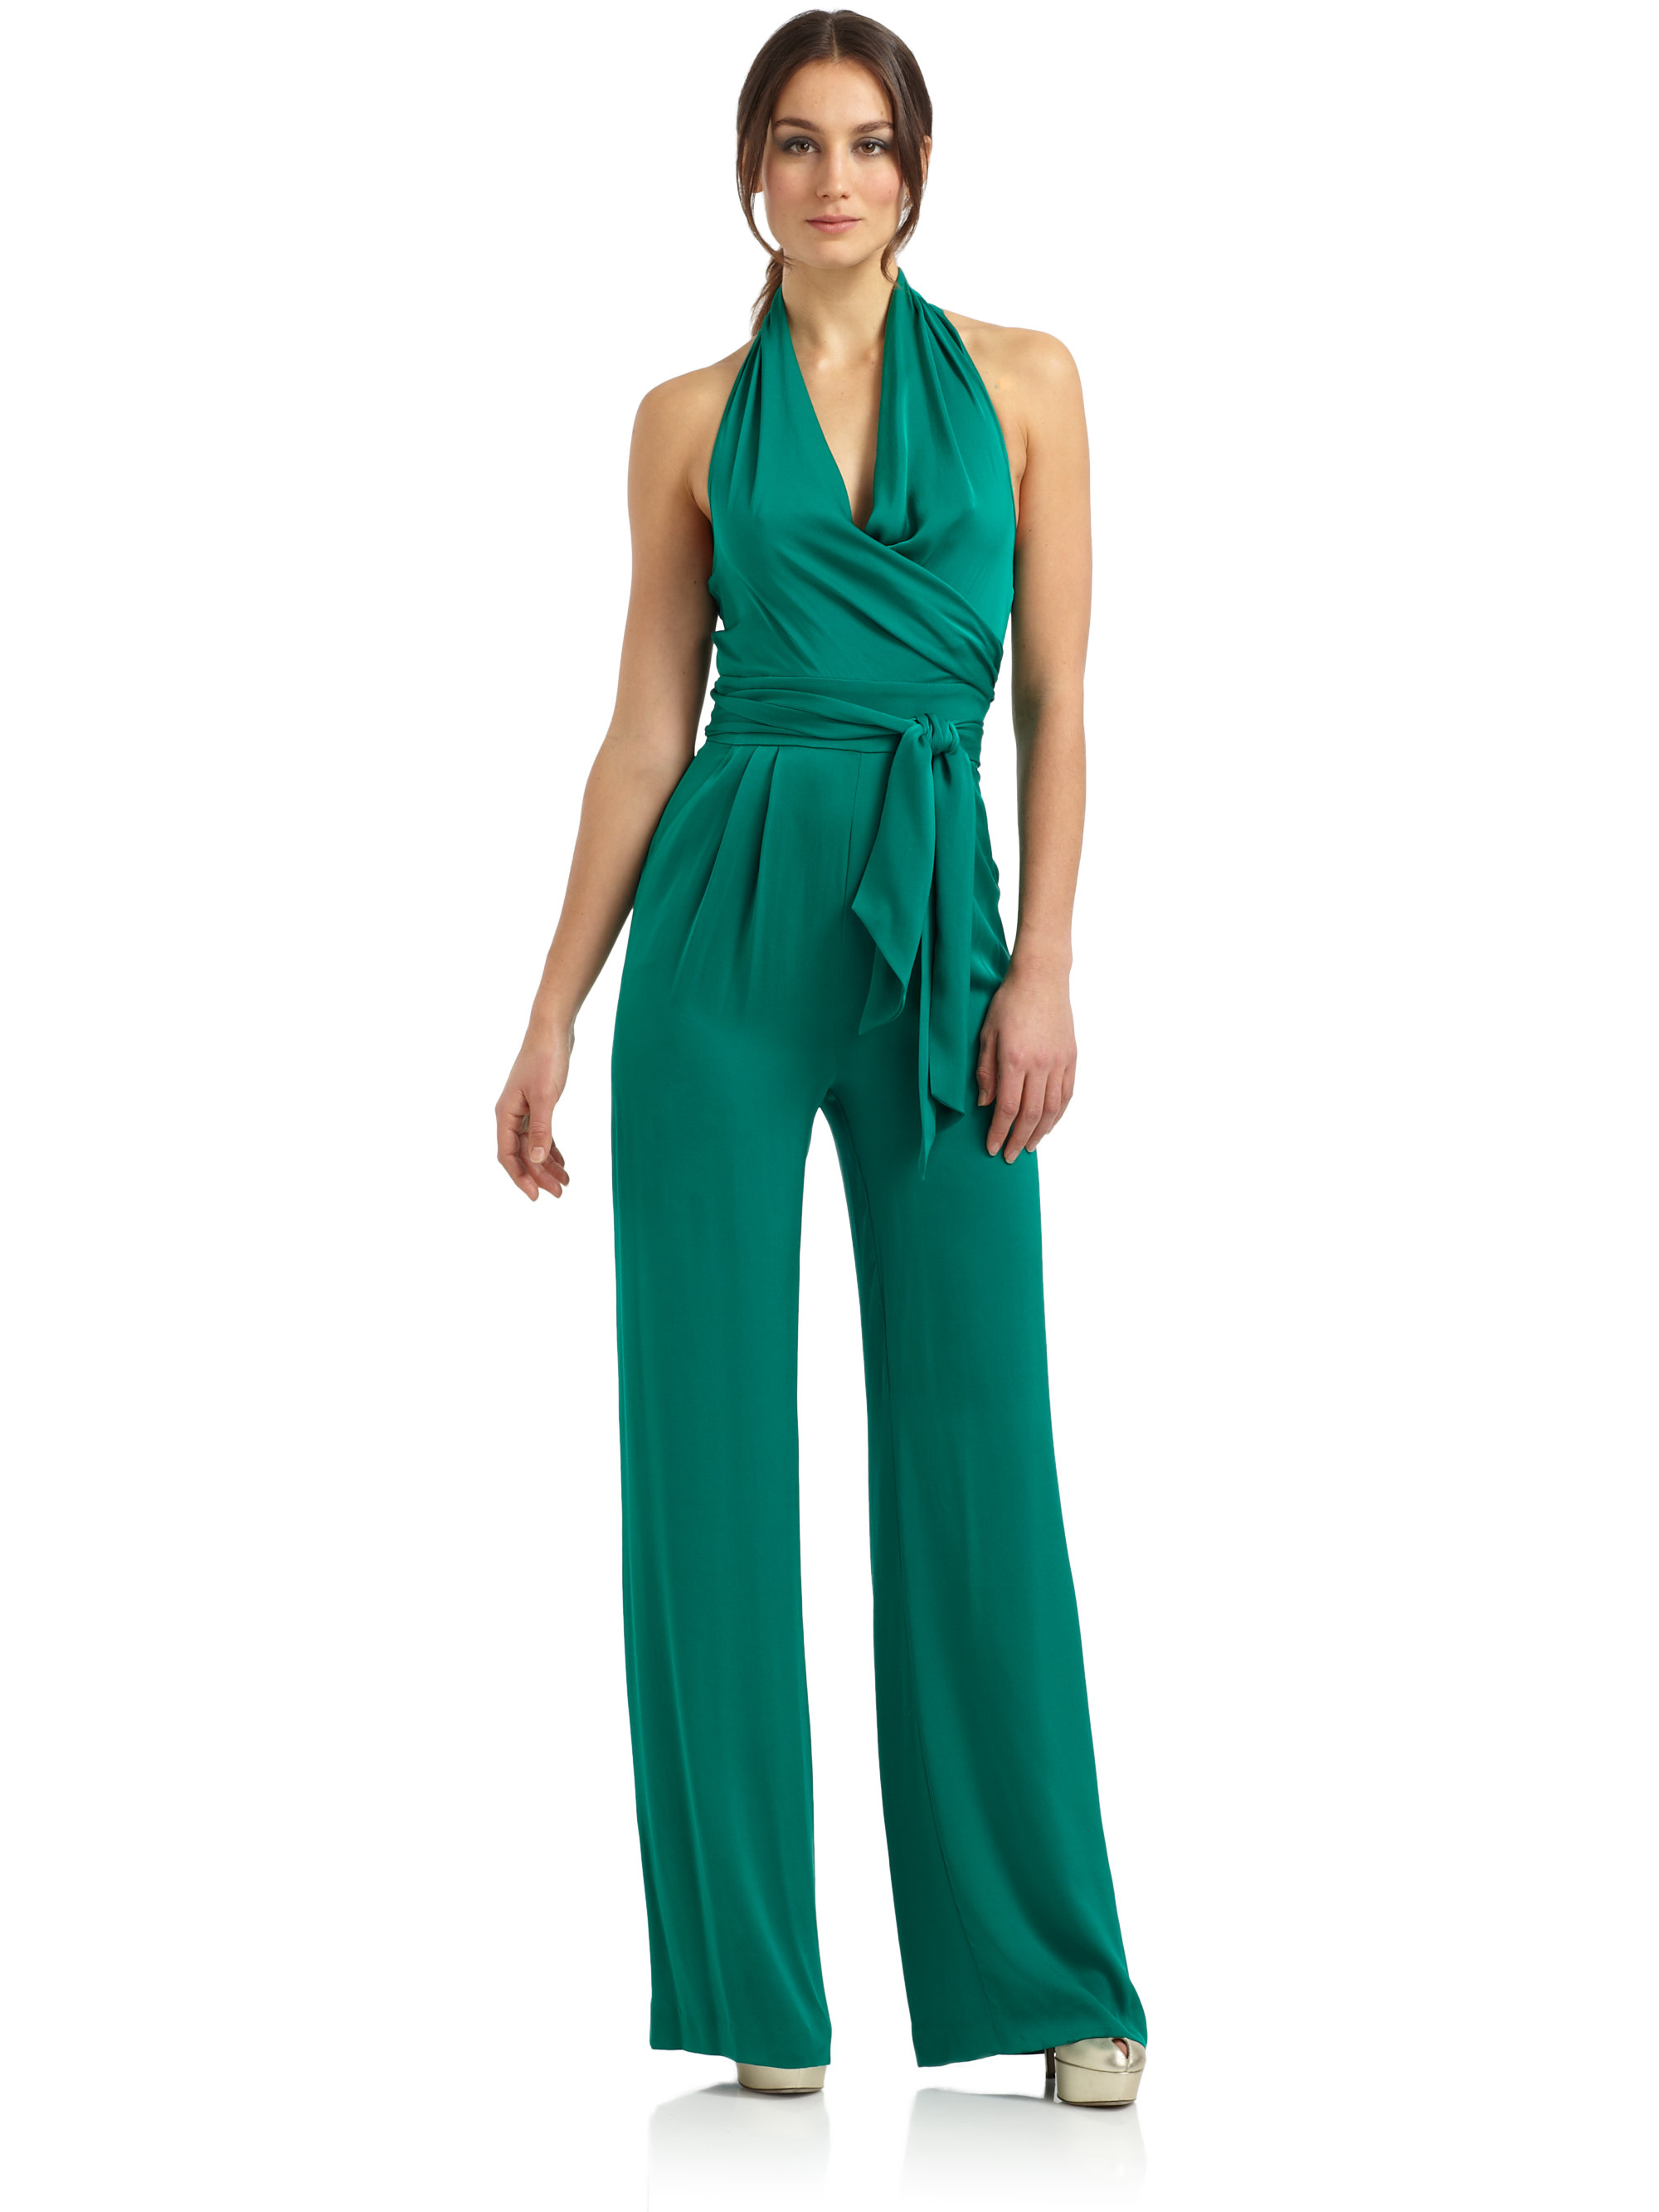 ad82a6241605 Lyst - Catherine Malandrino Stretch Silk Halter Jumpsuit in Blue